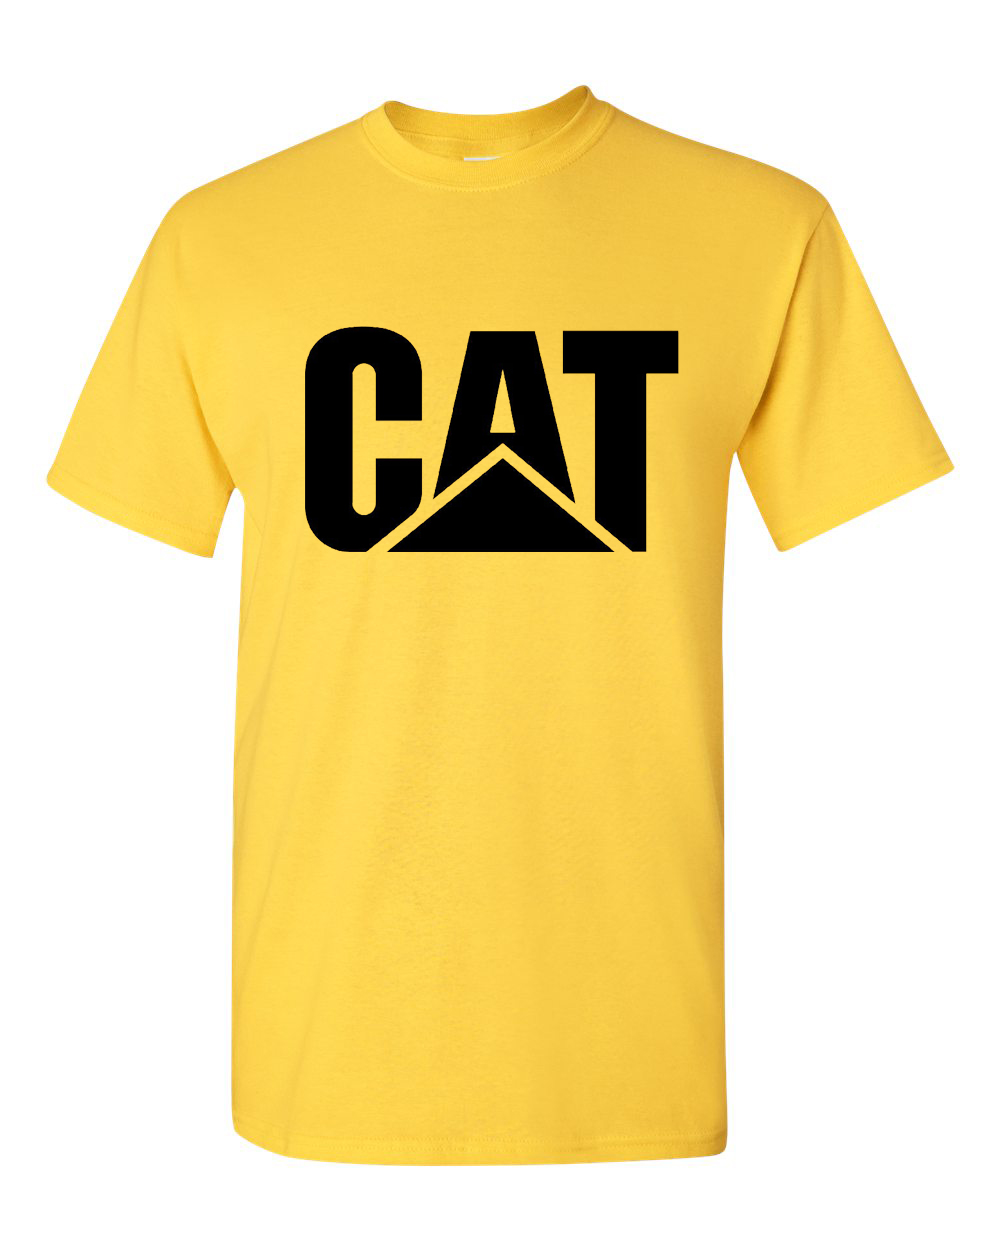 Cat Caterpillar Machine Engine Diesel Power Logo Mascot